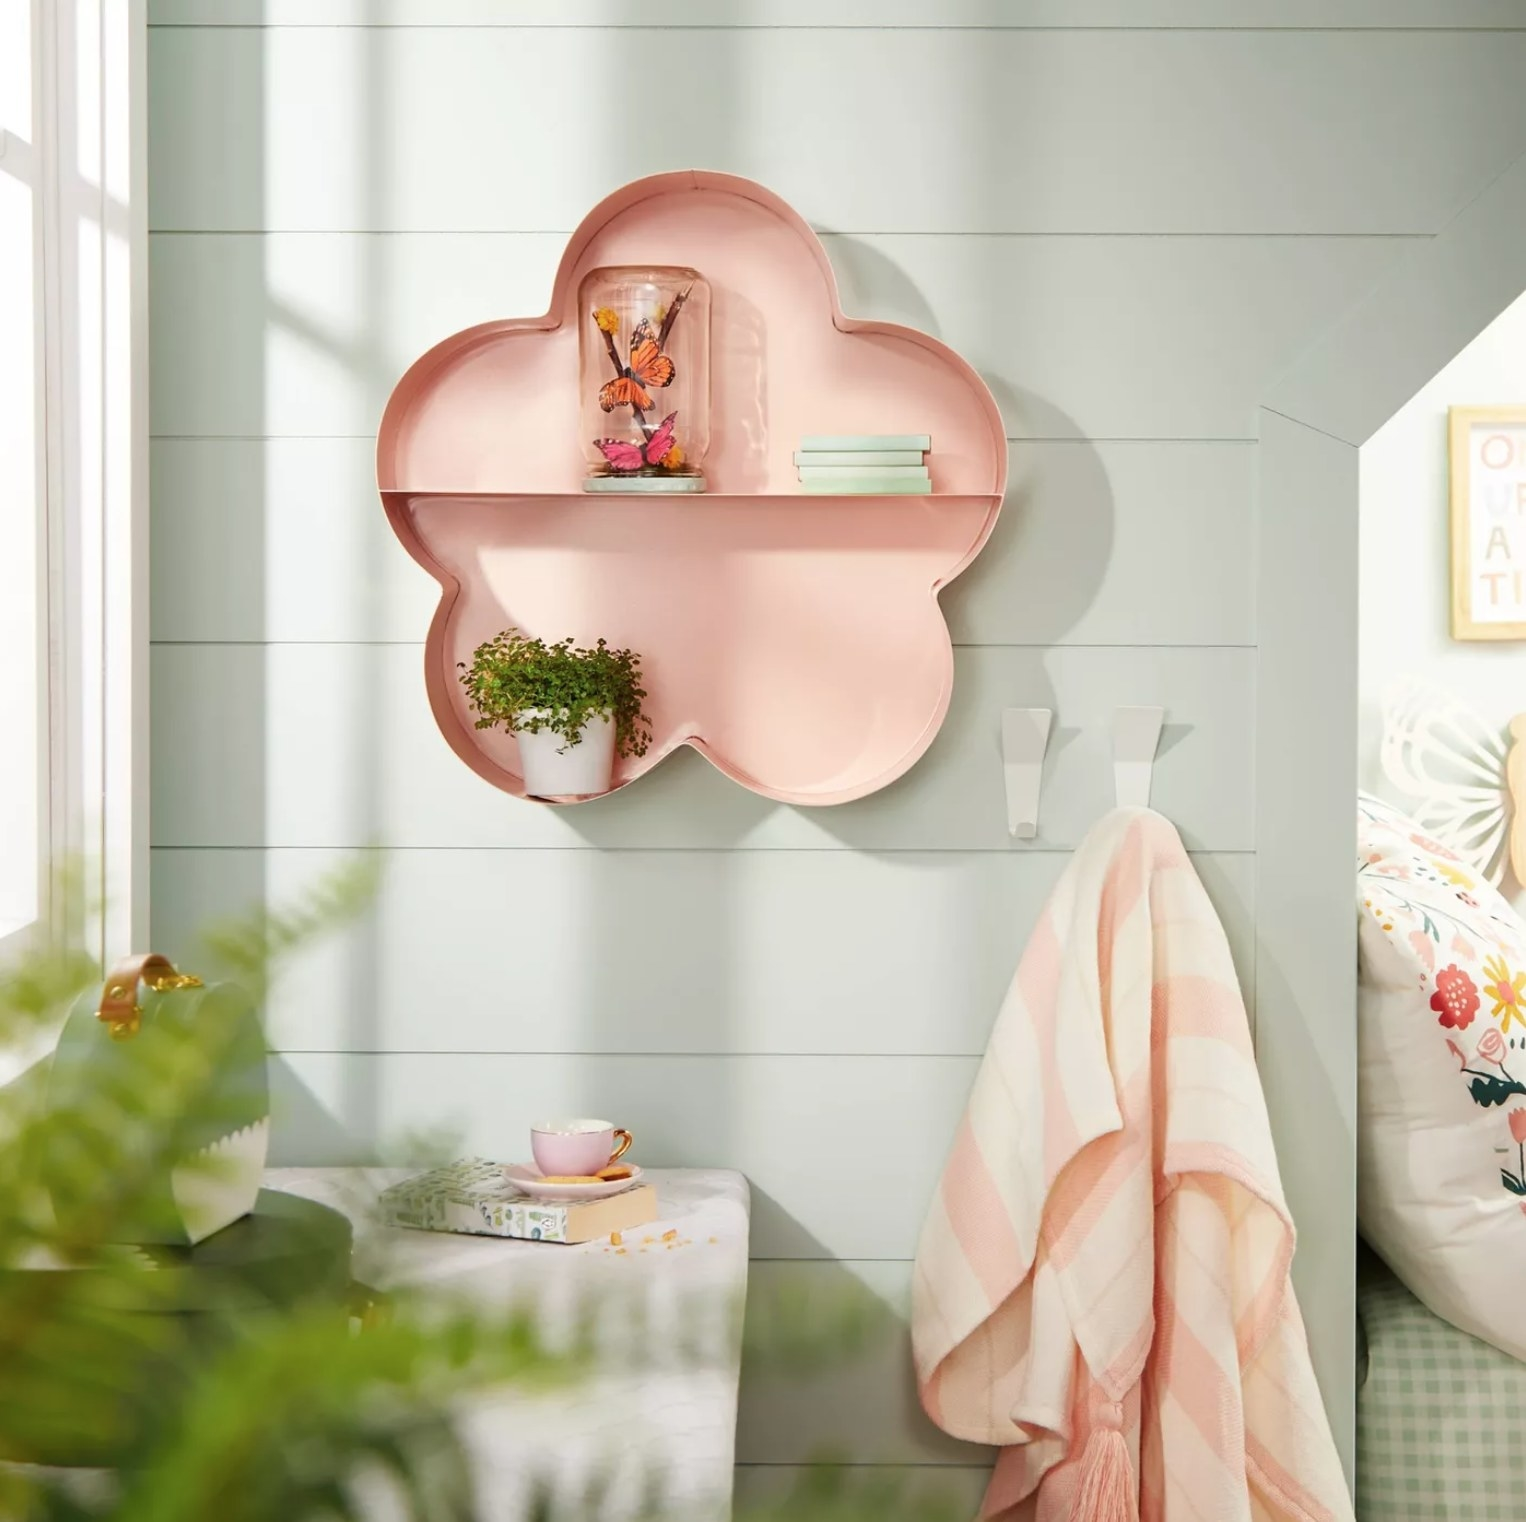 The pink shelf on a wall with a plant and other decorations